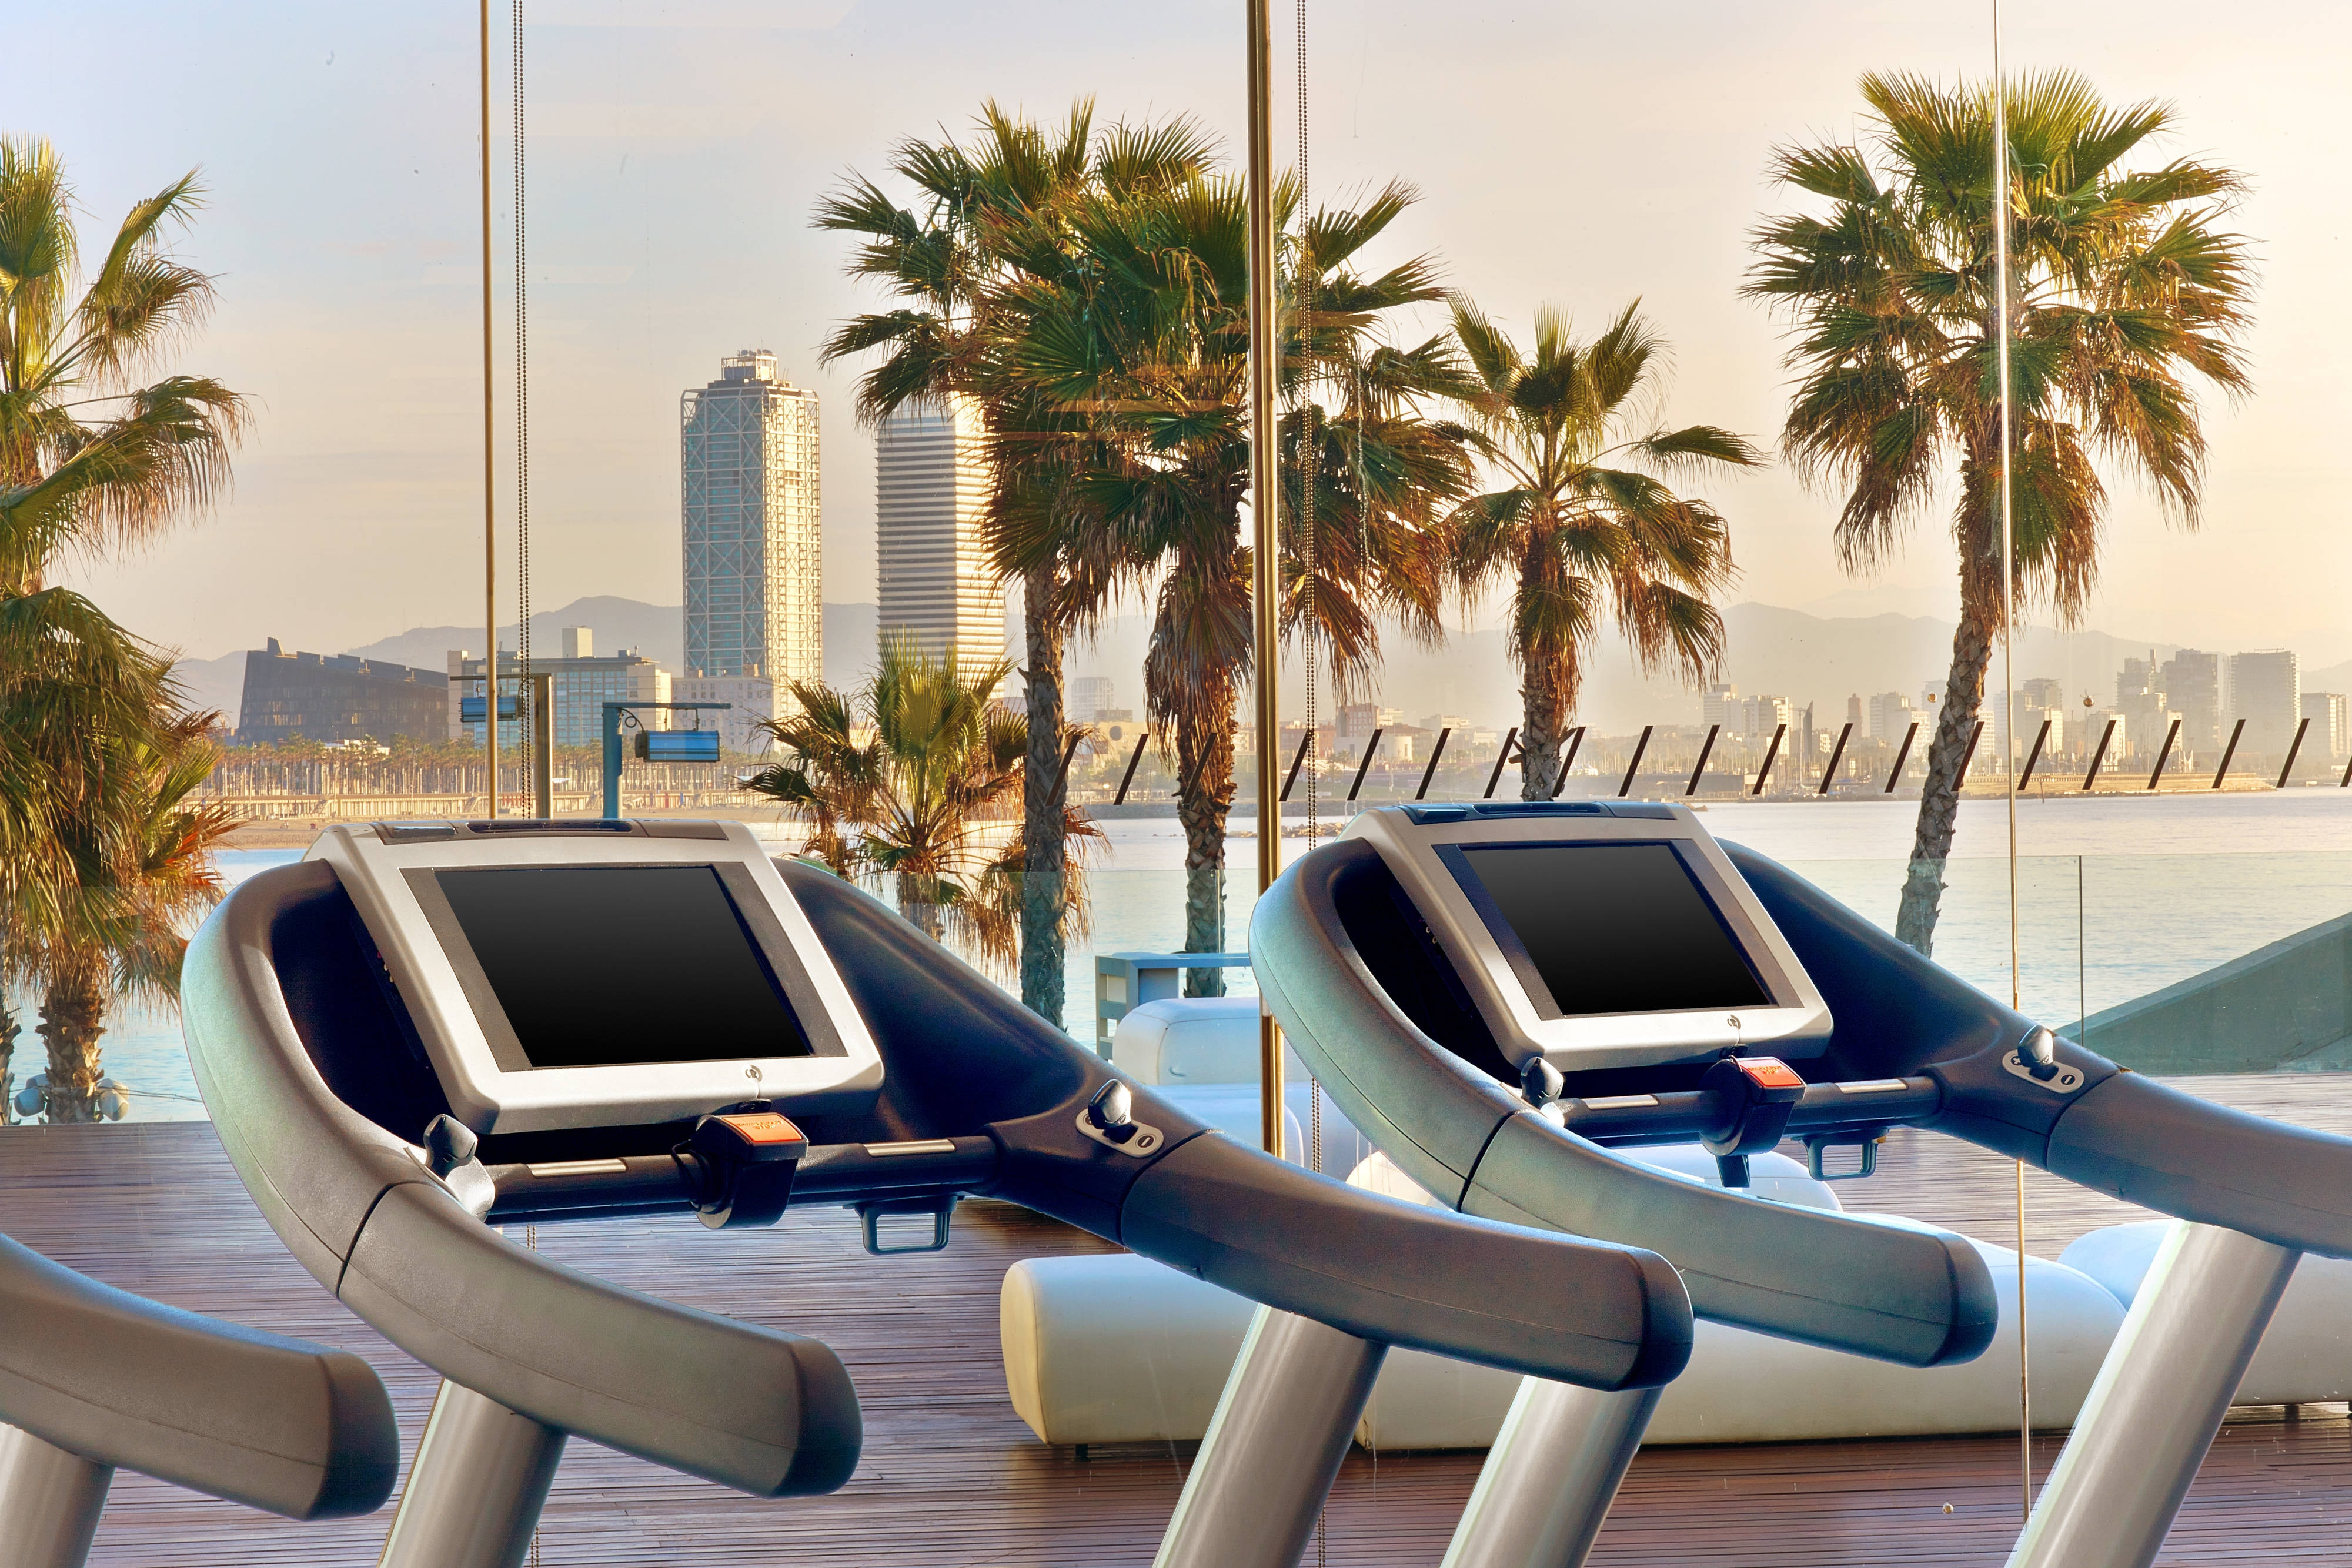 FIT treadmills with sea View